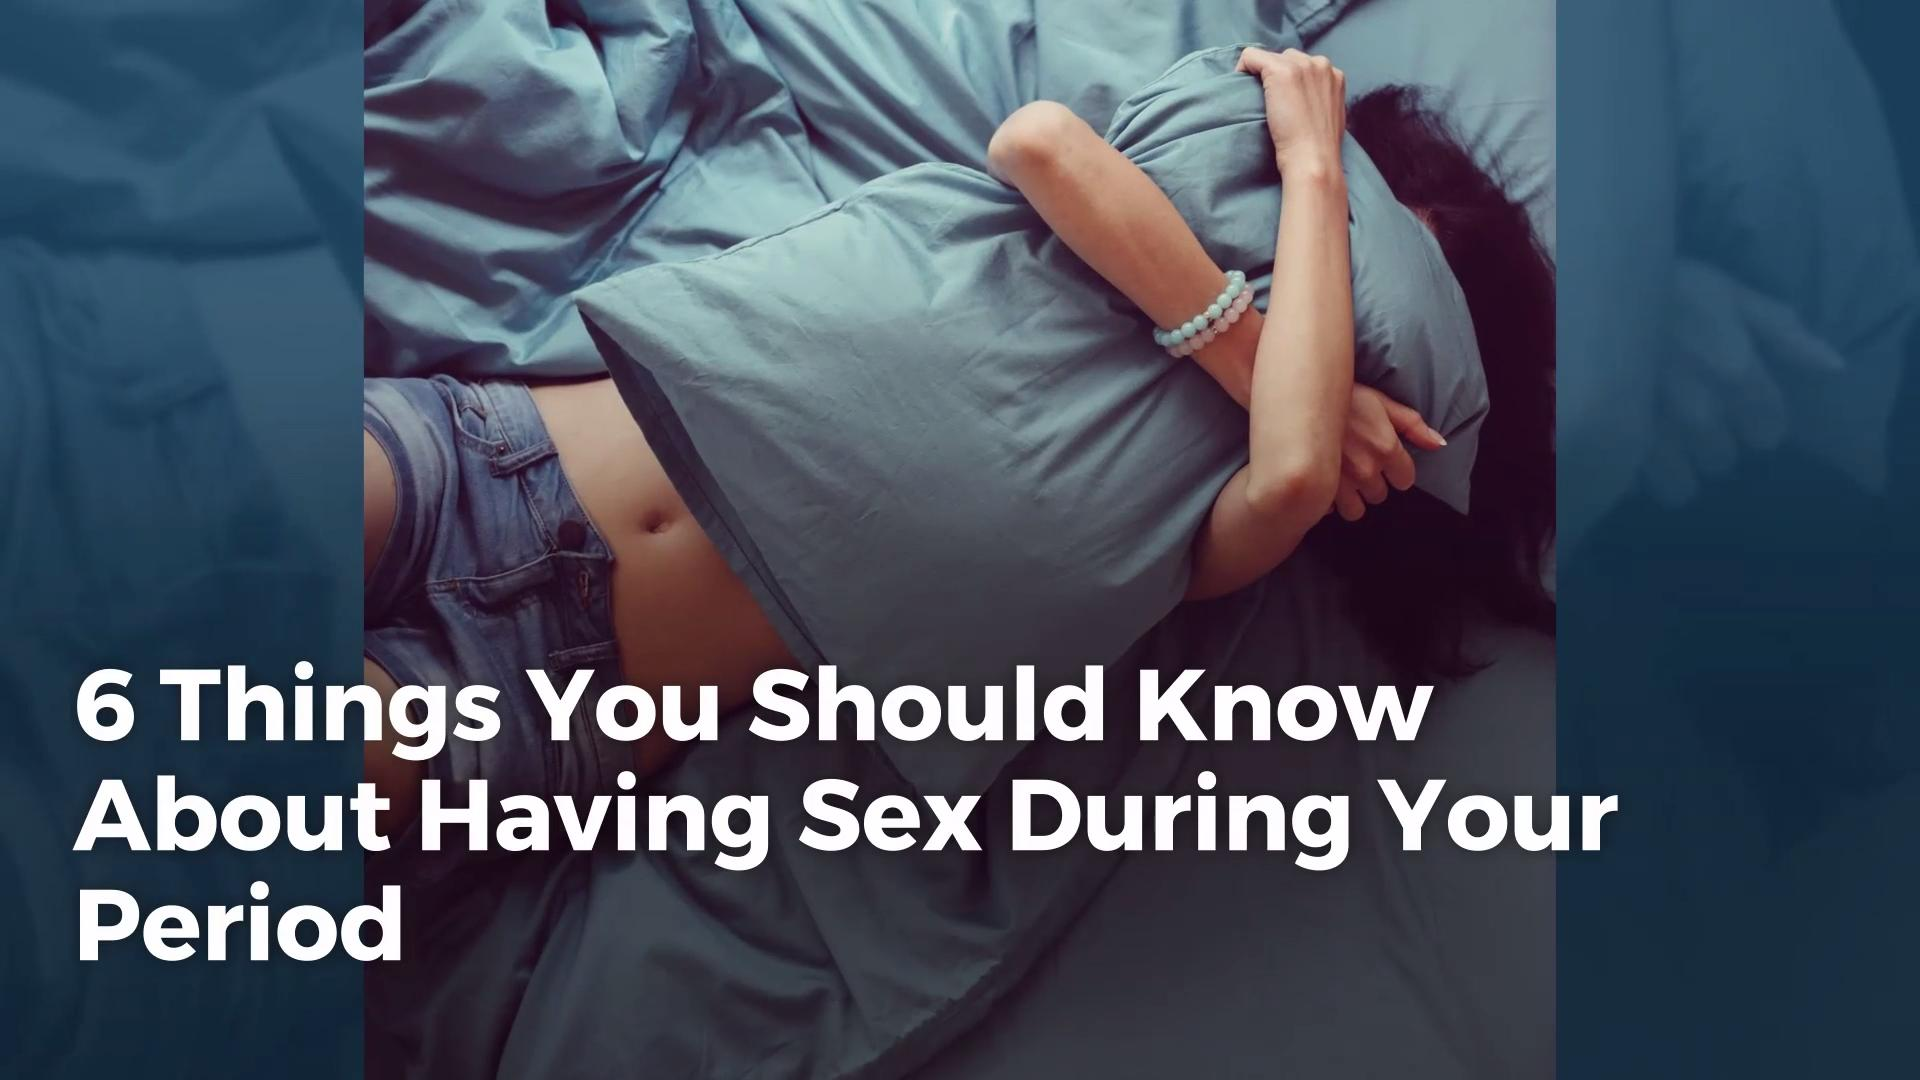 Can a woman have sex while on her period